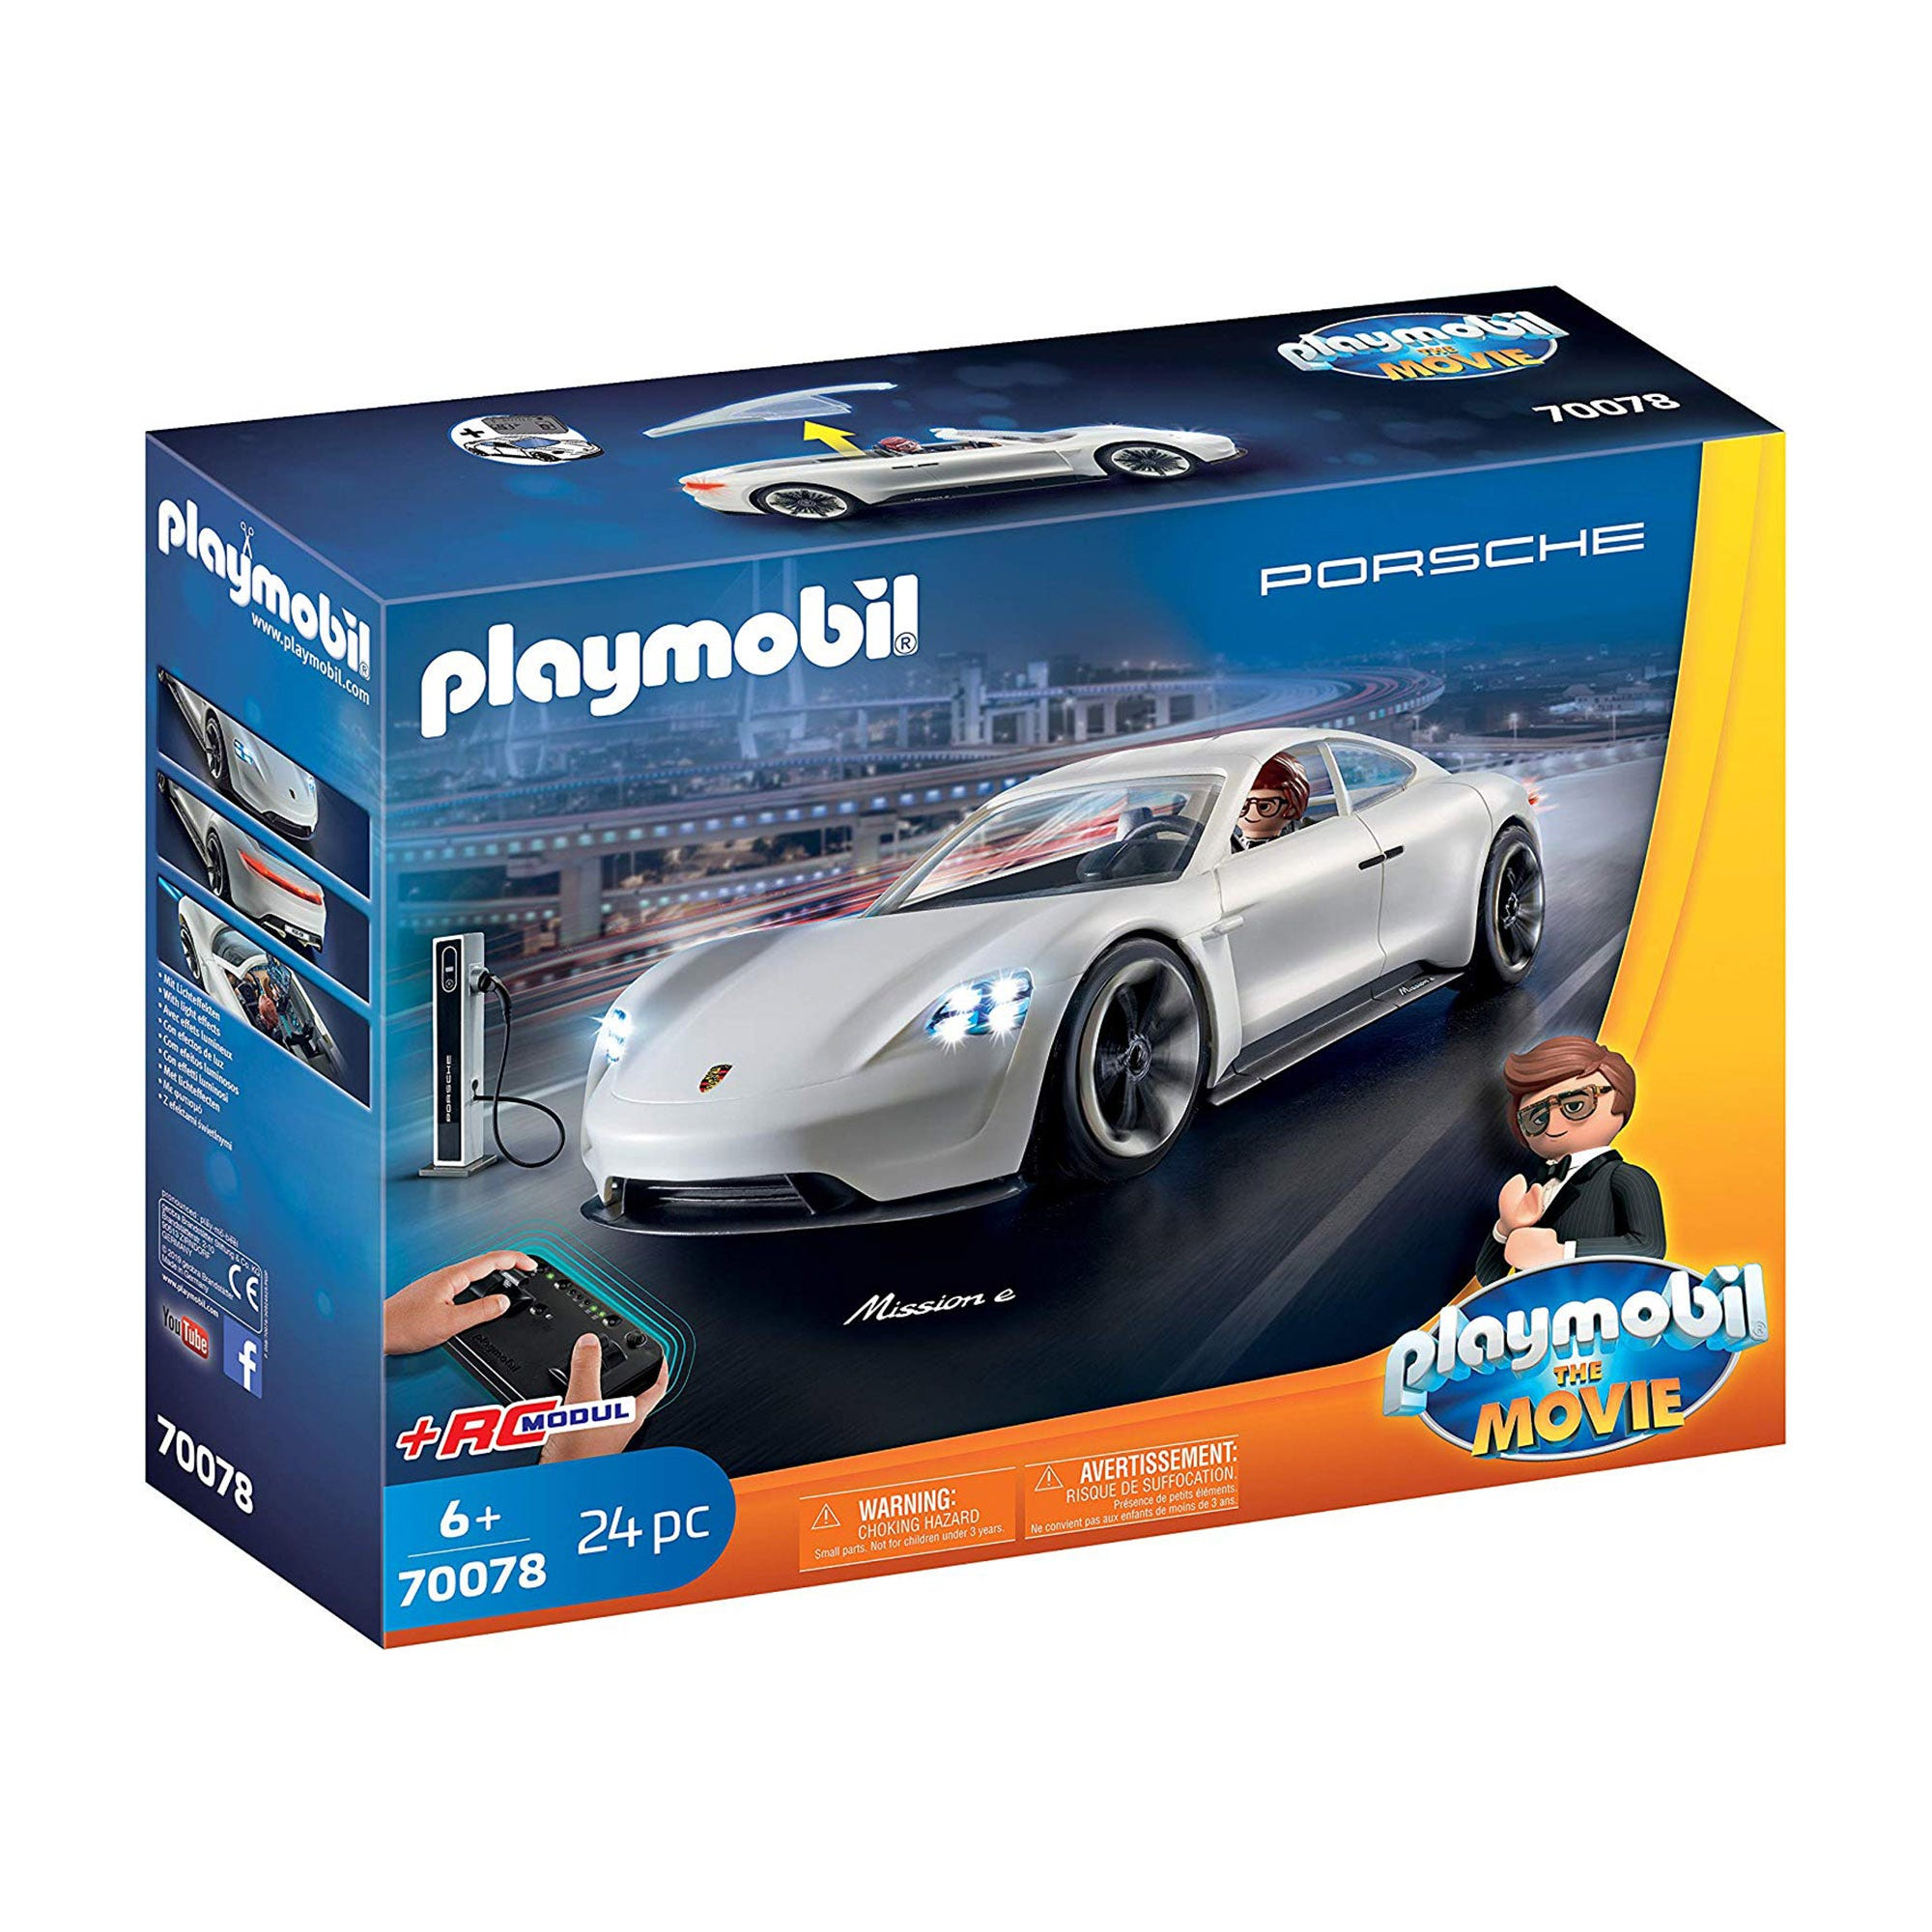 Playmobil 70078 Playmobil: THE MOVIE Rex Dashers Porsche Mi